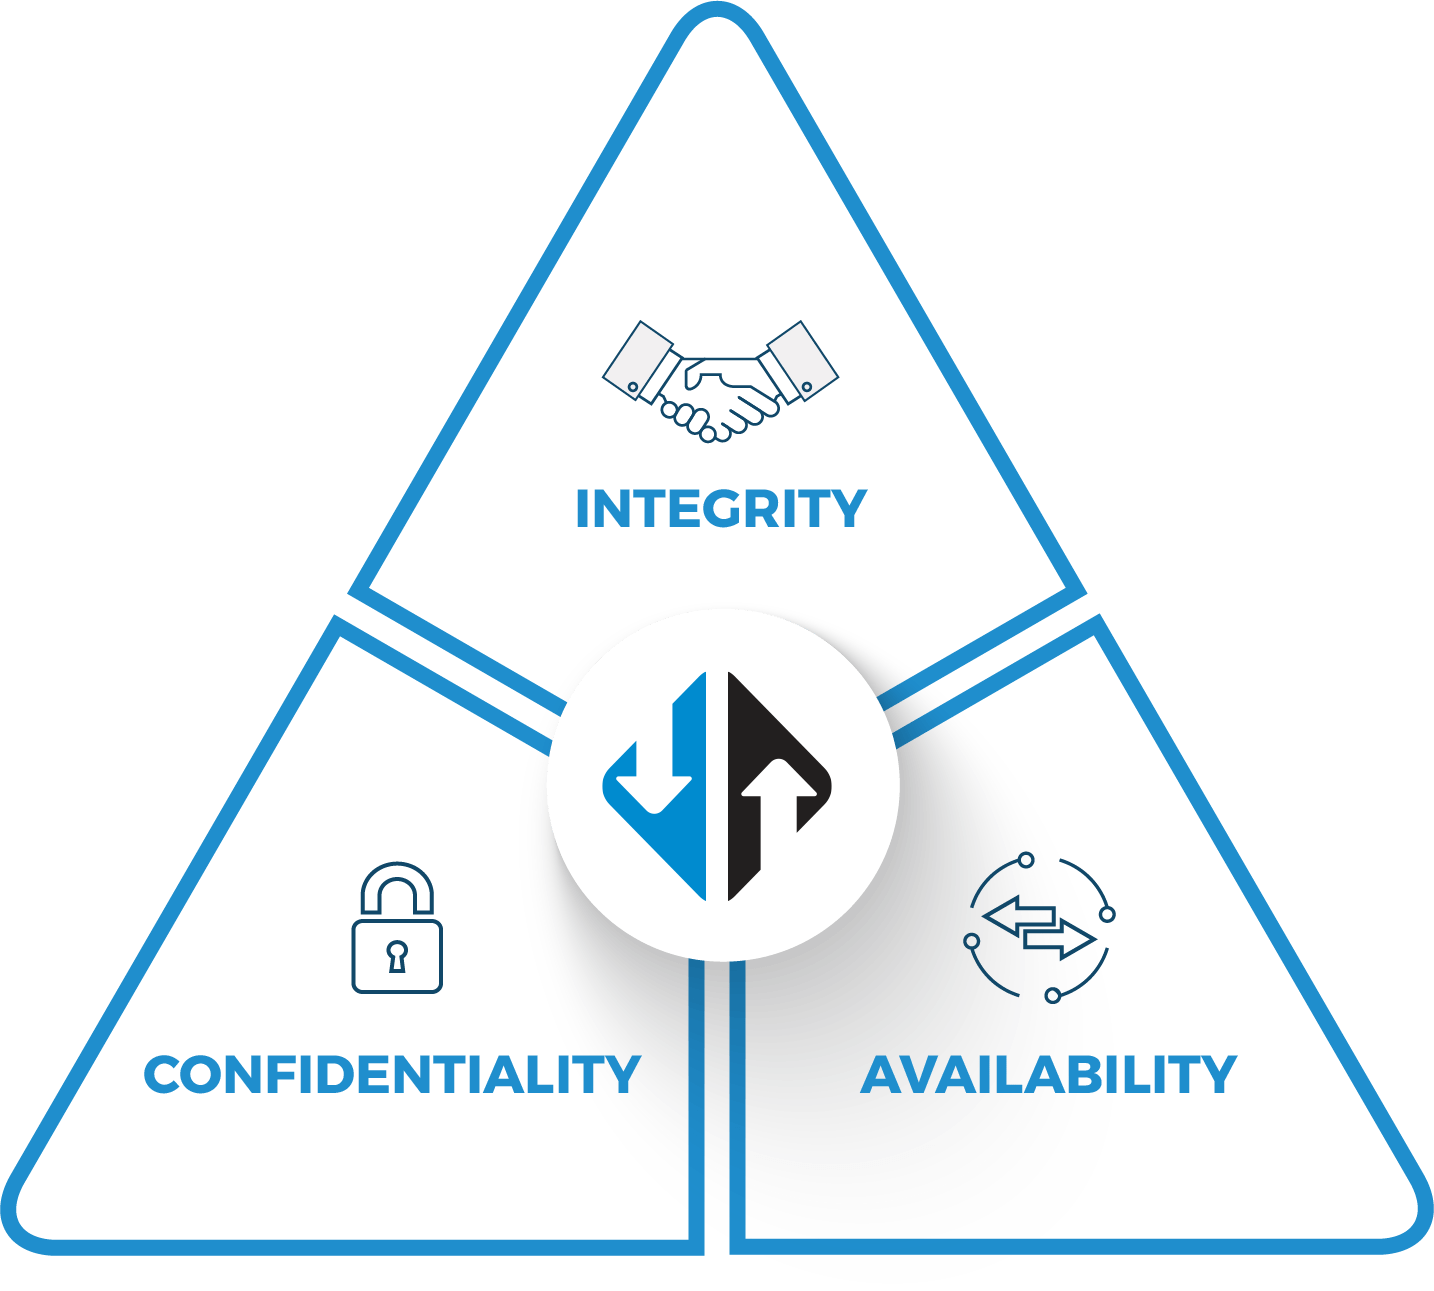 GoAnywhere security mission triad: integrity, confidentiality, and availability.